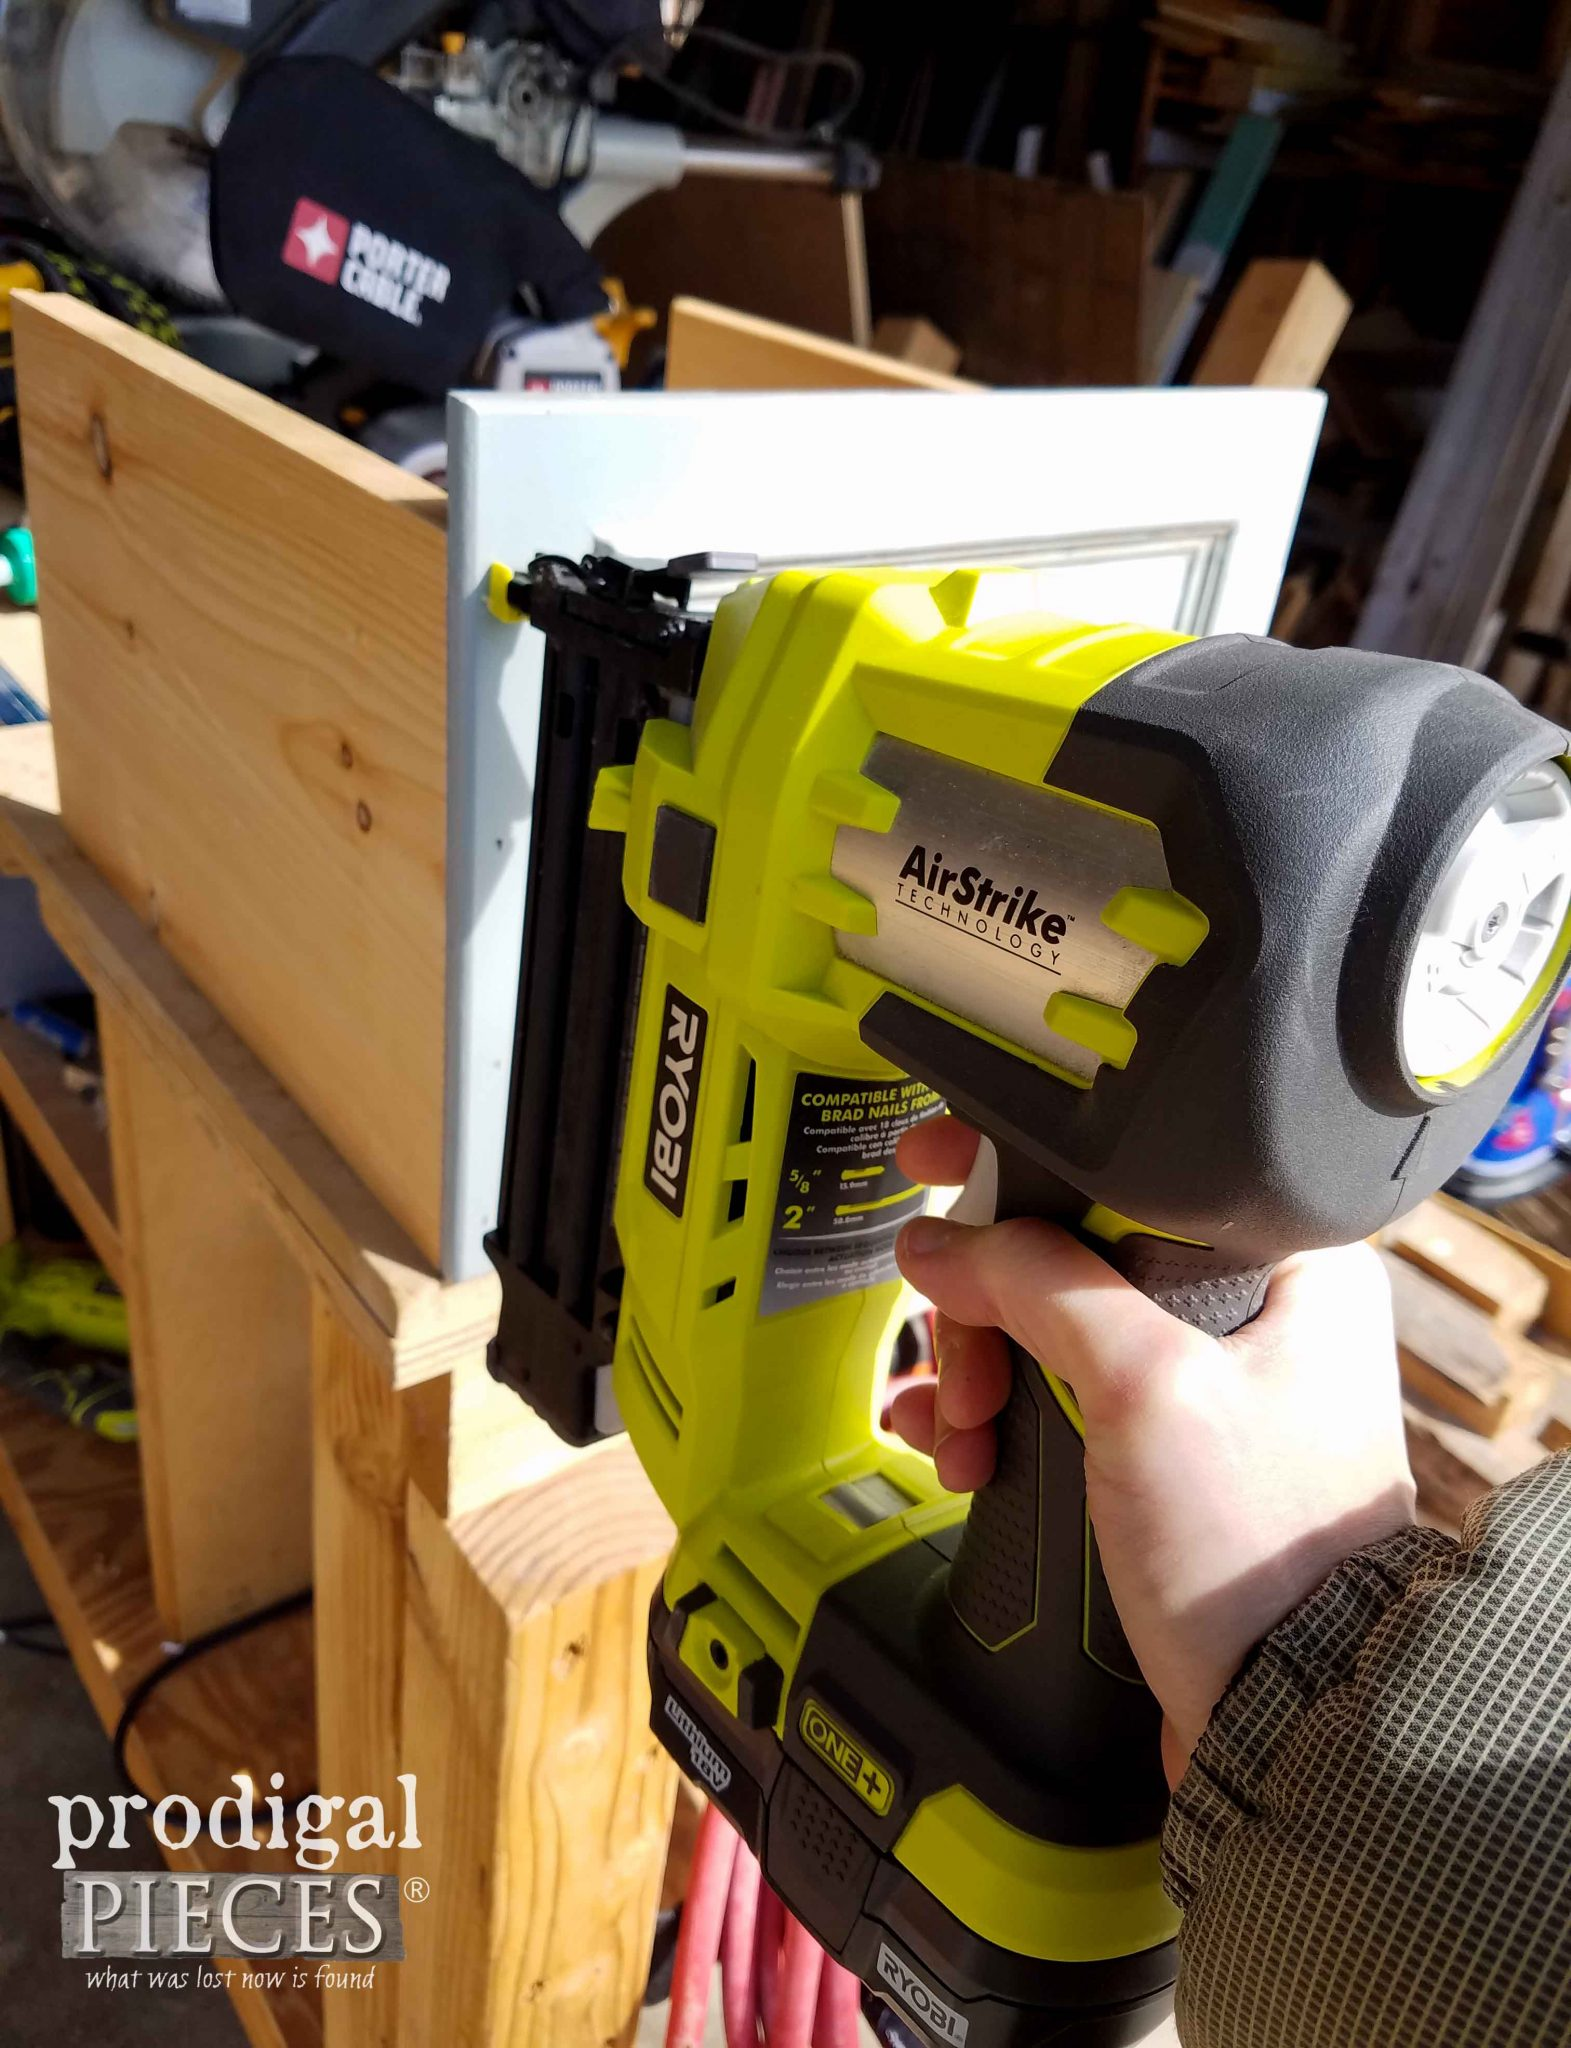 Using Ryboi AirStrike Nailer to Build DIY Storage | Prodigal Pieces | prodigalpieces.com